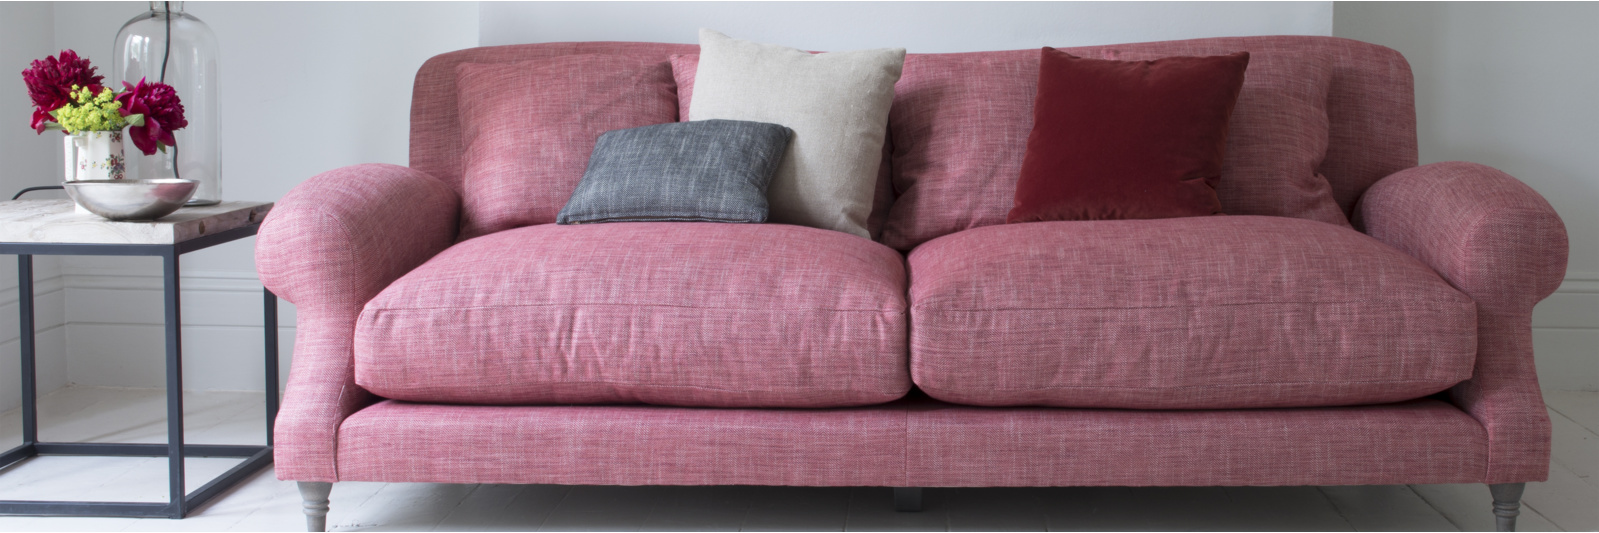 Crumpet deep sofa in red fabric